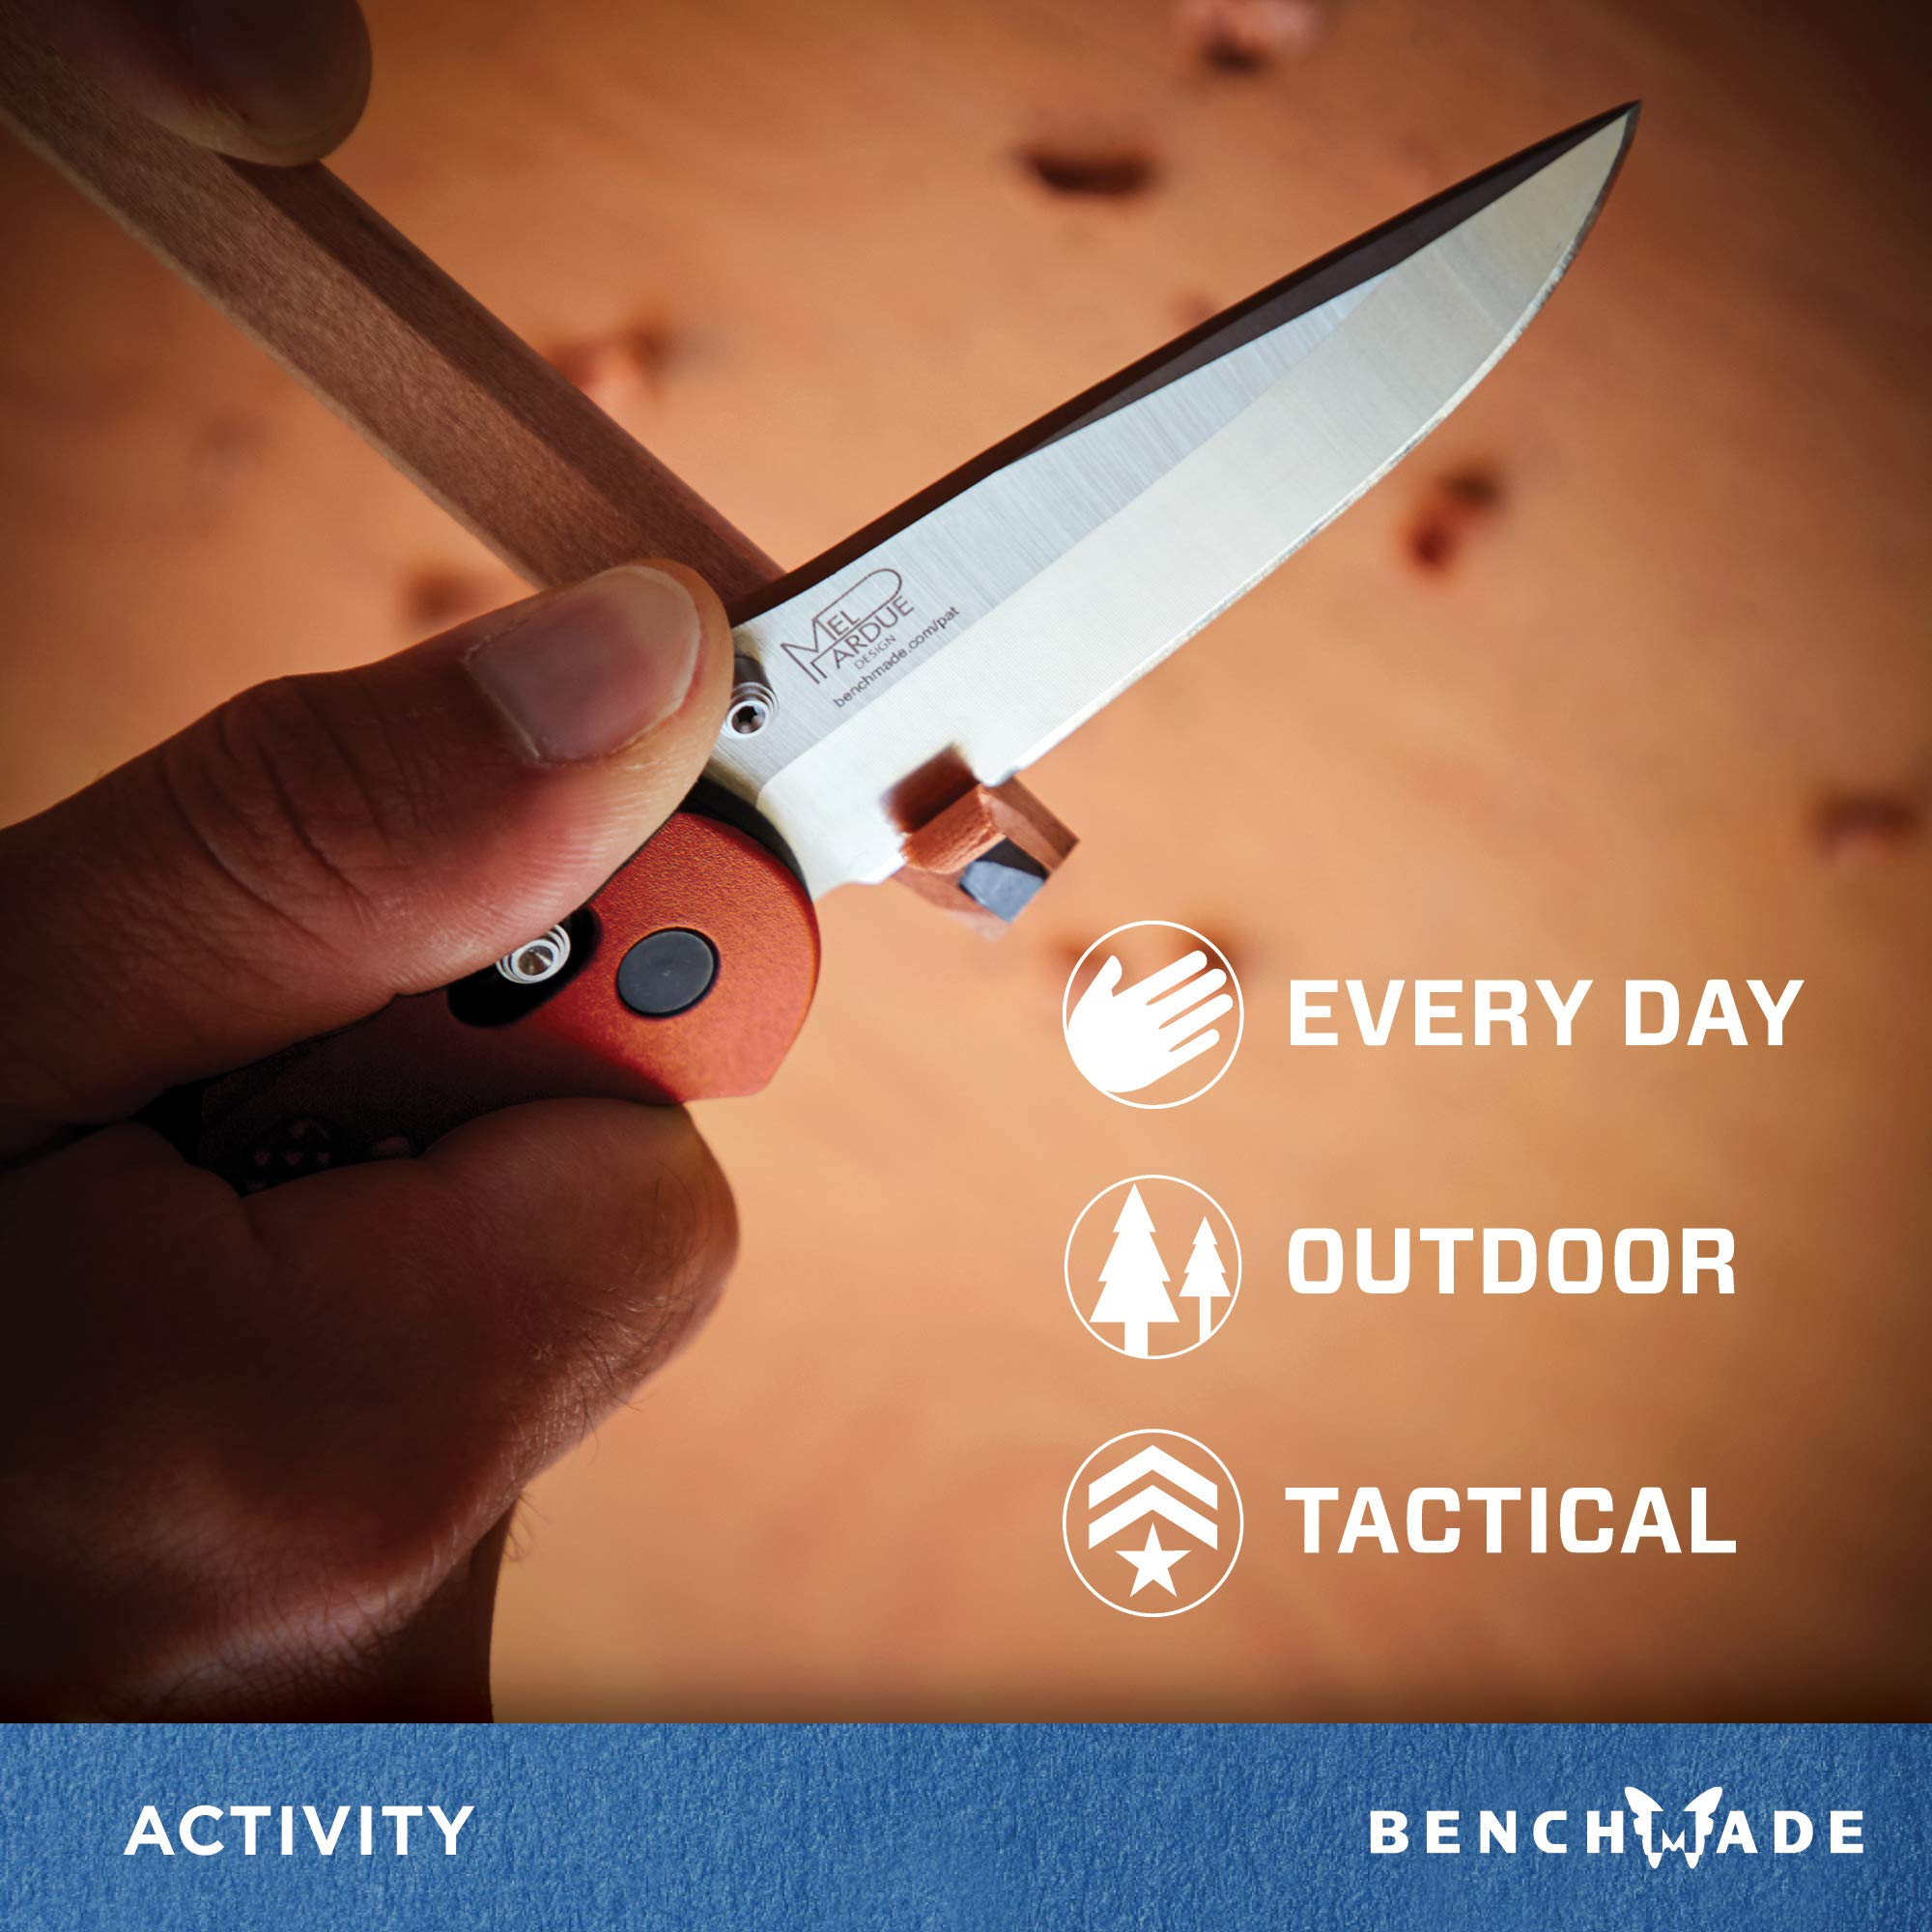 Benchmade - Griptilian 551 Knife with CPM-S30V Steel, Drop-Point Blade, Plain Edge, Satin Finish, Orange Handle by Benchmade (Image #4)